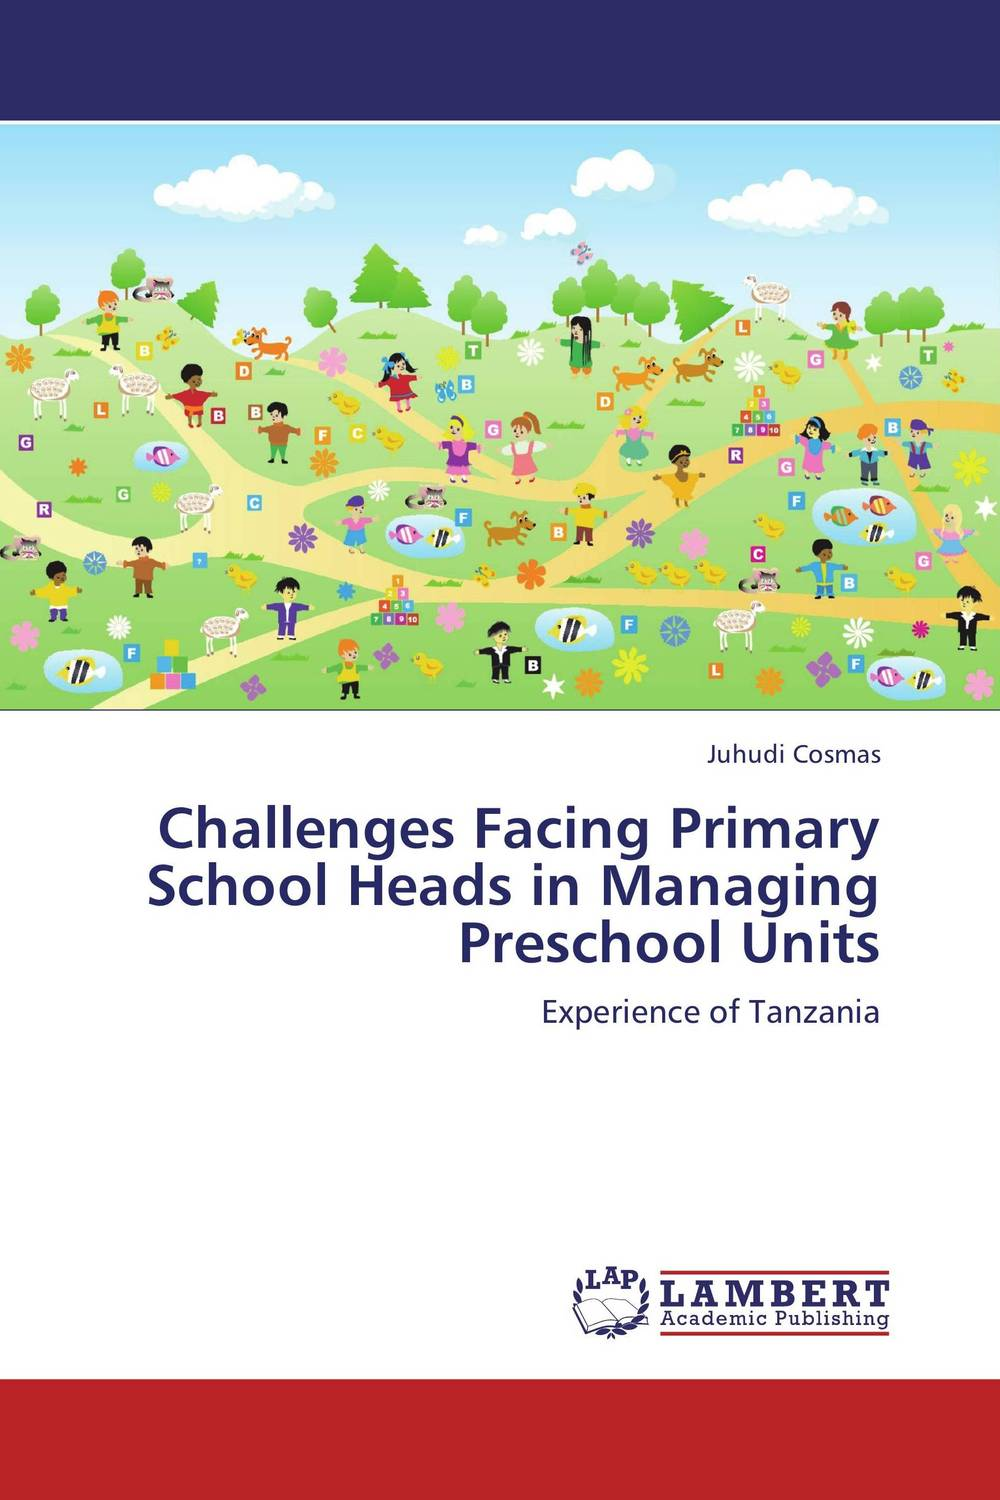 Challenges Facing Primary School Heads in Managing Preschool Units challenges facing school based teacher recruitment in mombasa kenya